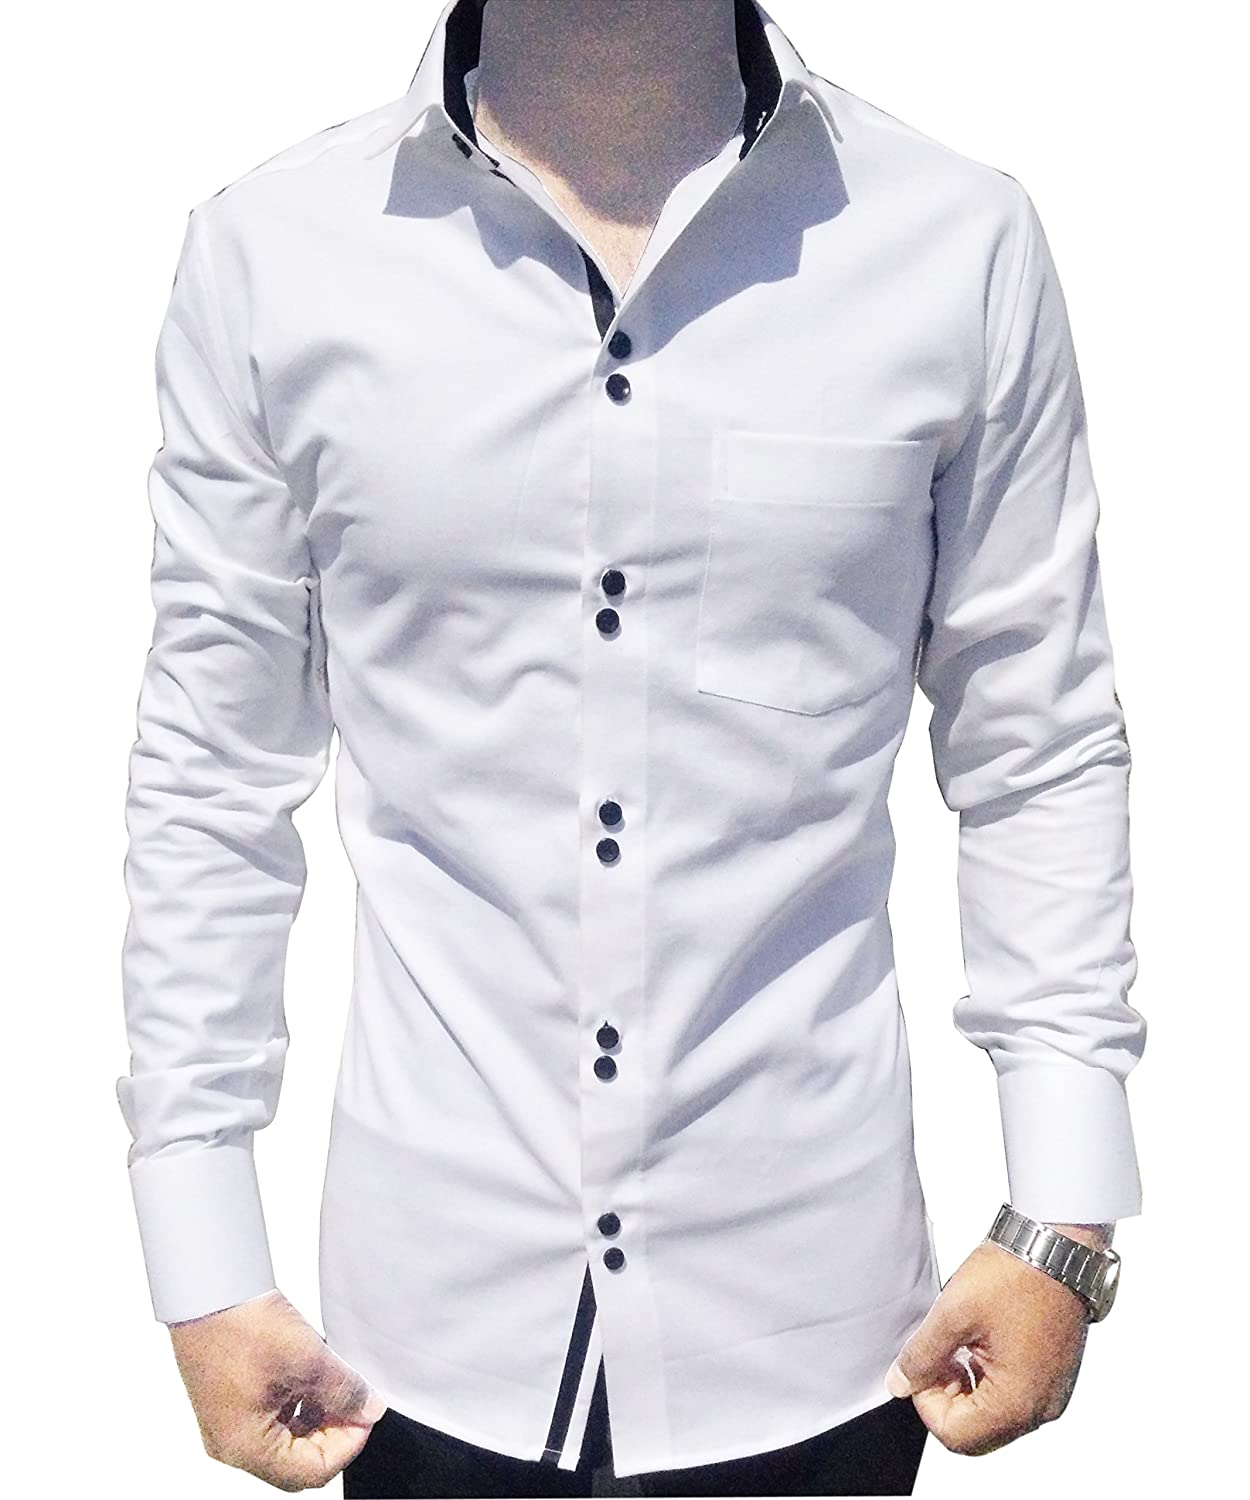 casual shirts for men,white cotton trendy shirt,long sleeves,slim ...